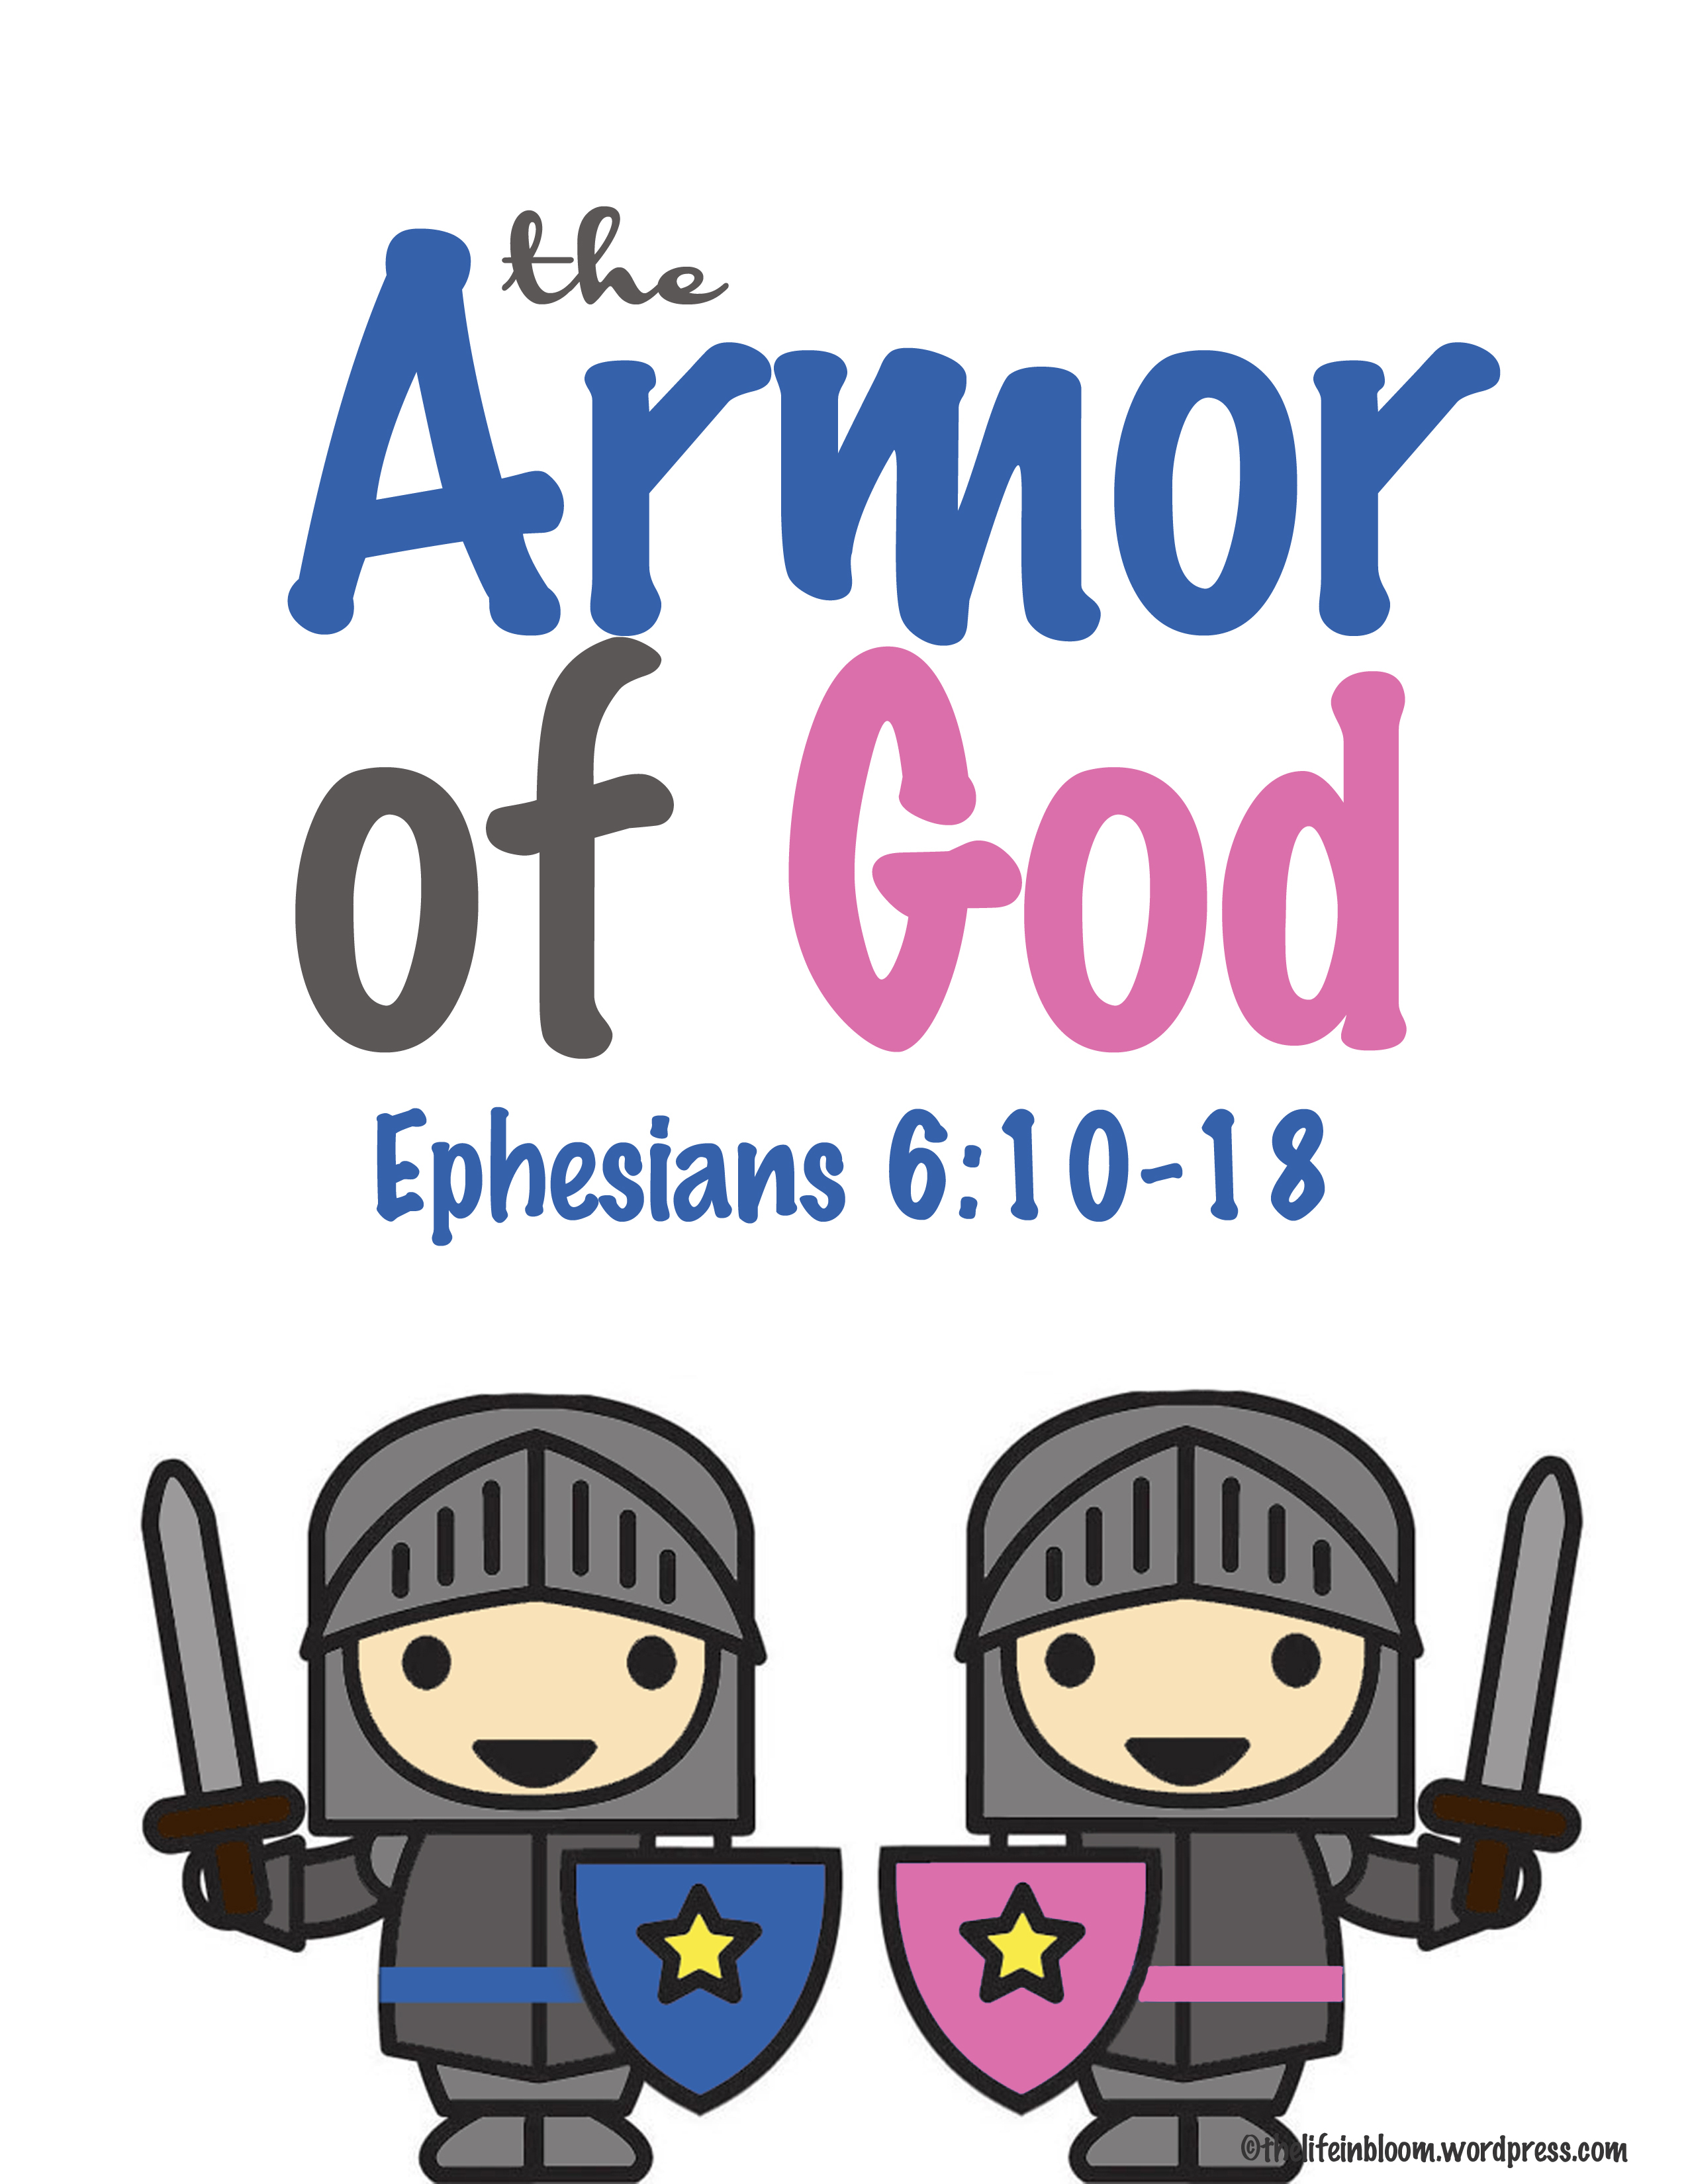 photograph relating to Armor of God Printable Activities named The Armor of God printable lesson packet